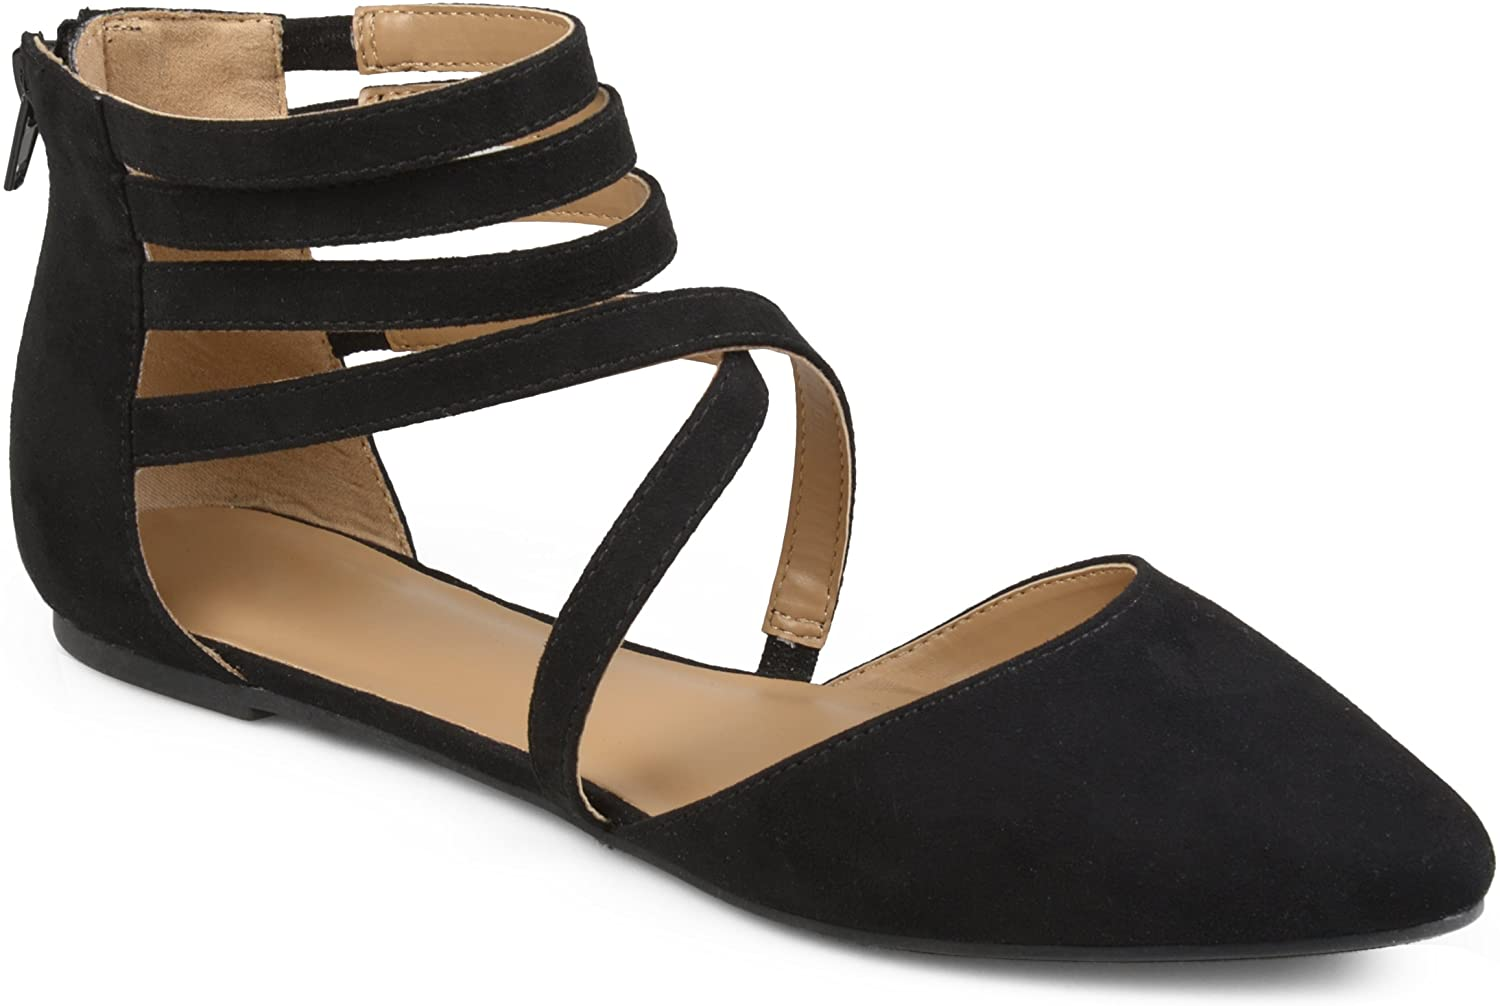 Journee Collection Womens Wrap Strap Faux Suede Flats Grey